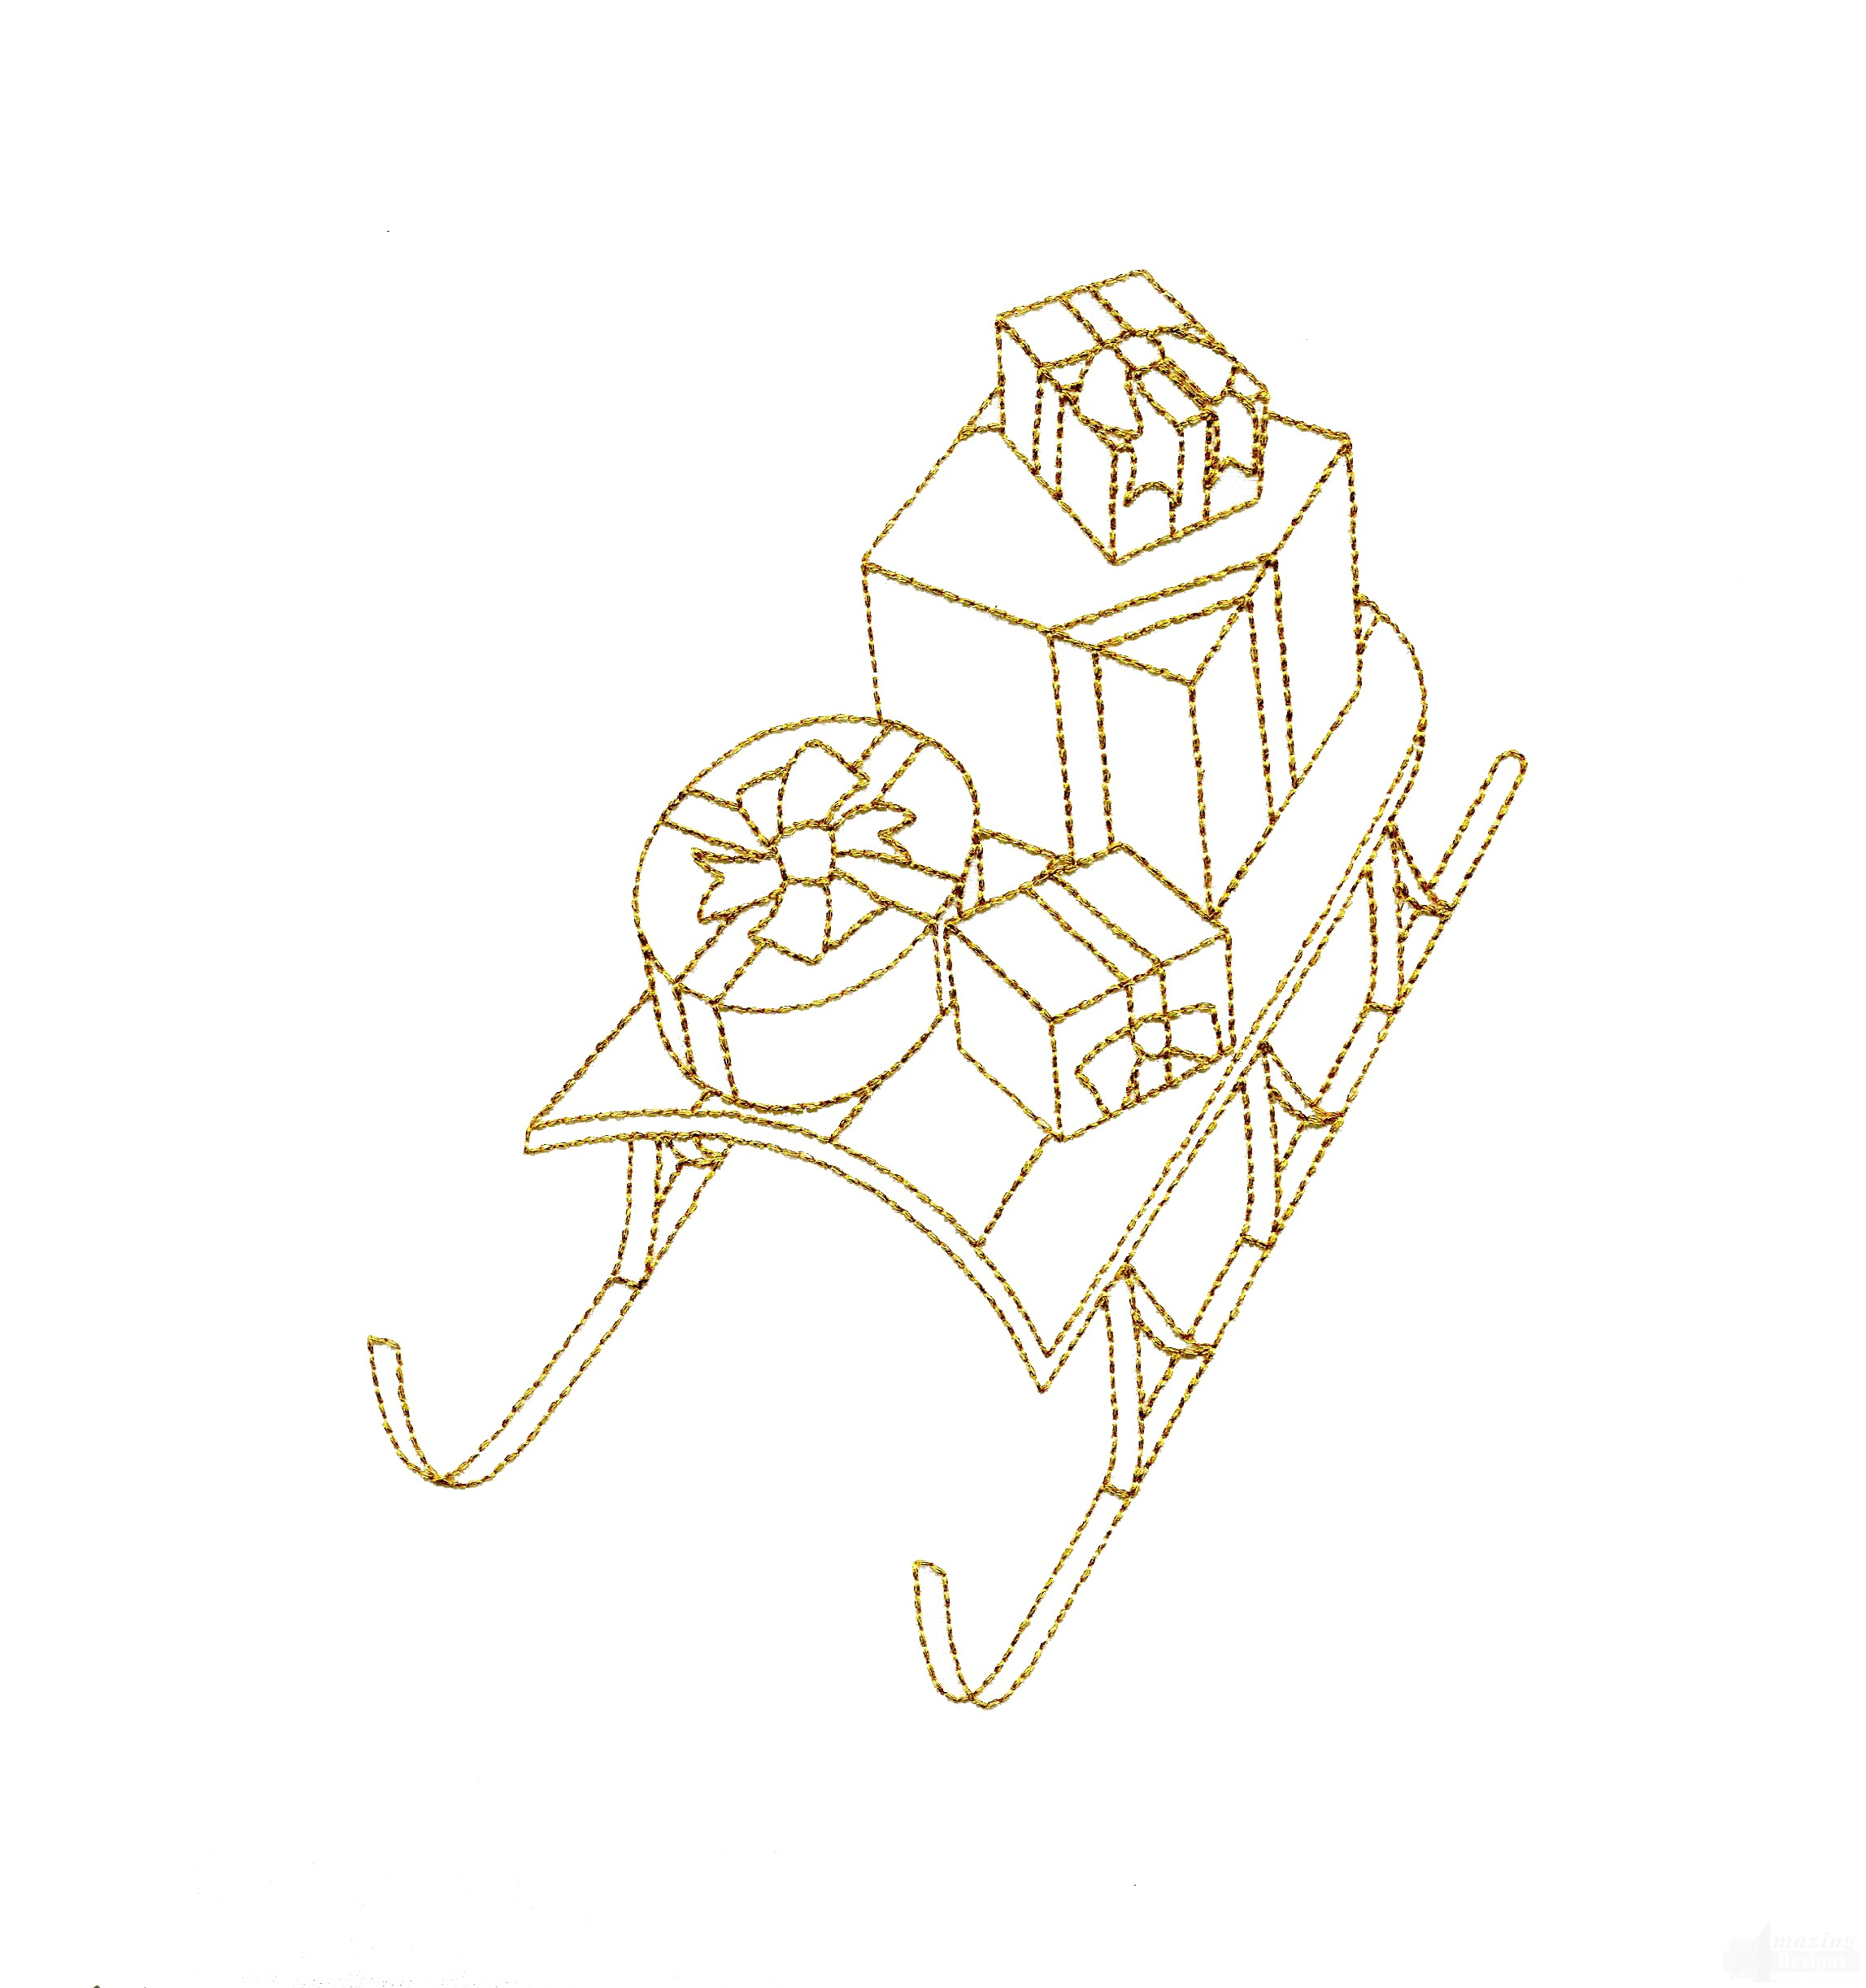 Line Work Design : Linework sled and presents embroidery design